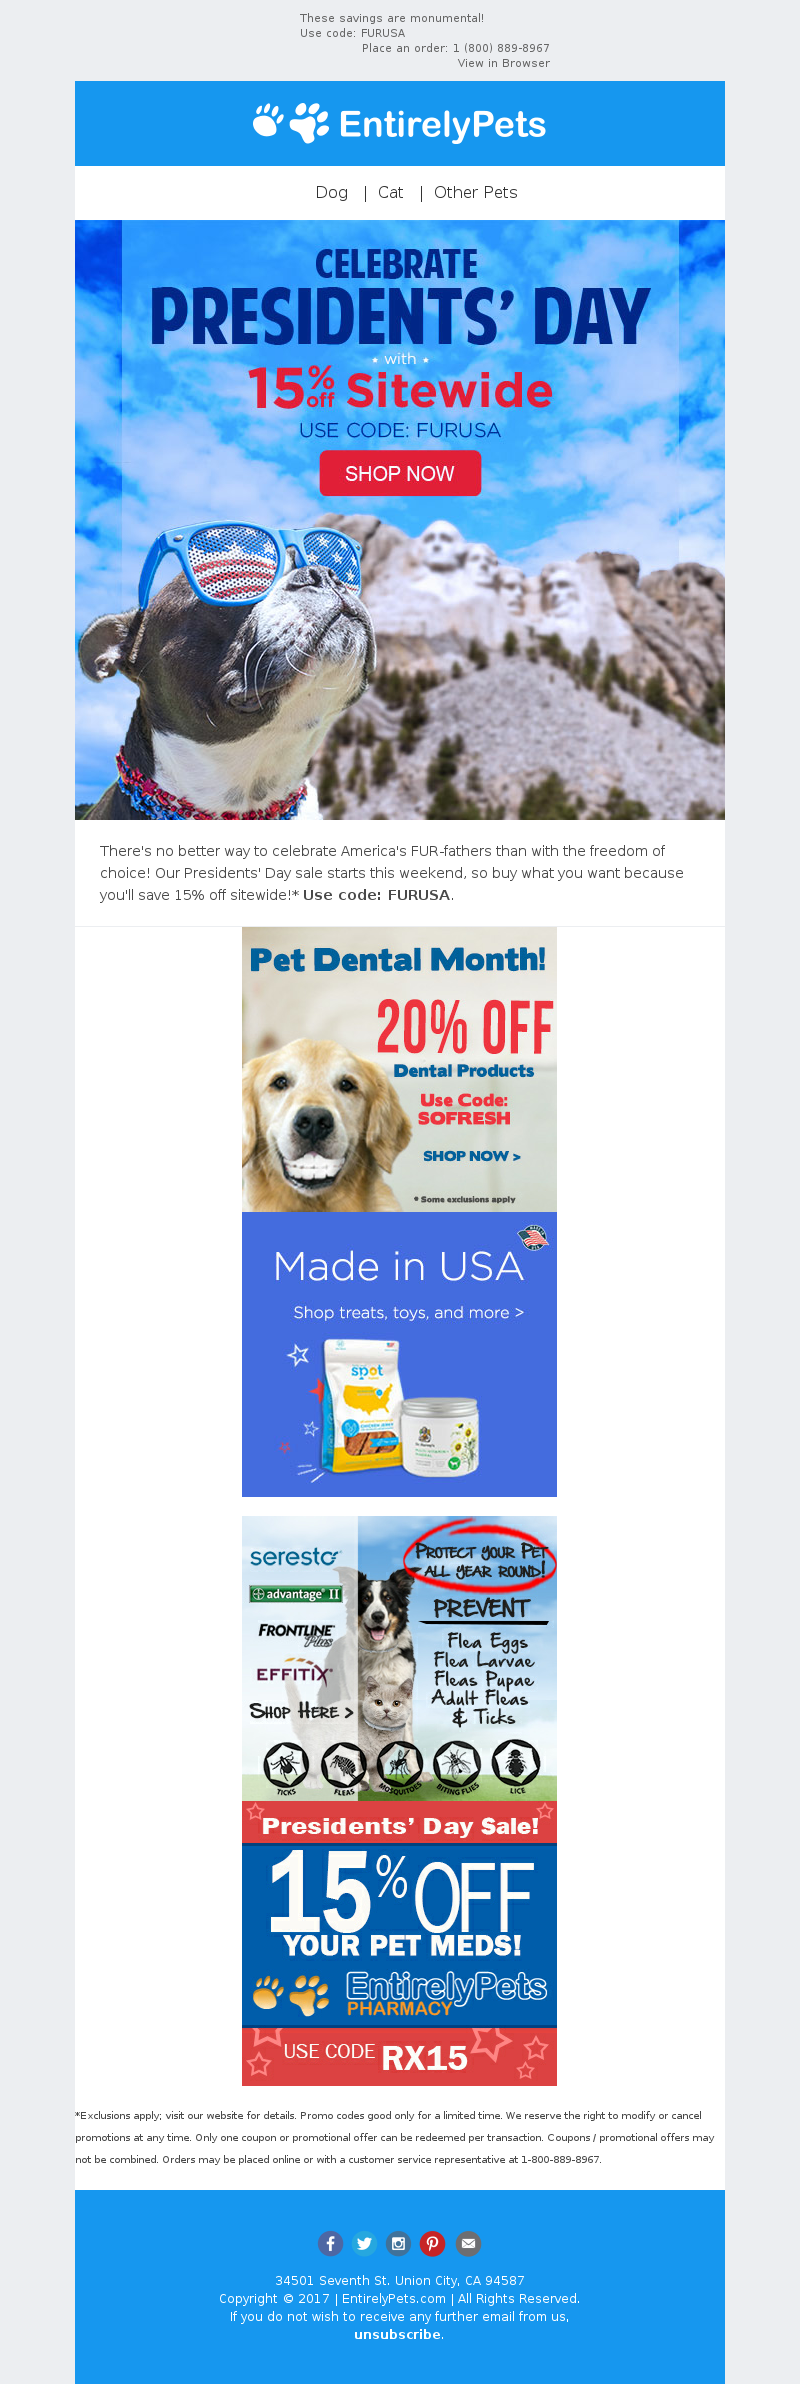 EntirelyPets - 15% off sitewide - Presidents' Day Sale starts NOW